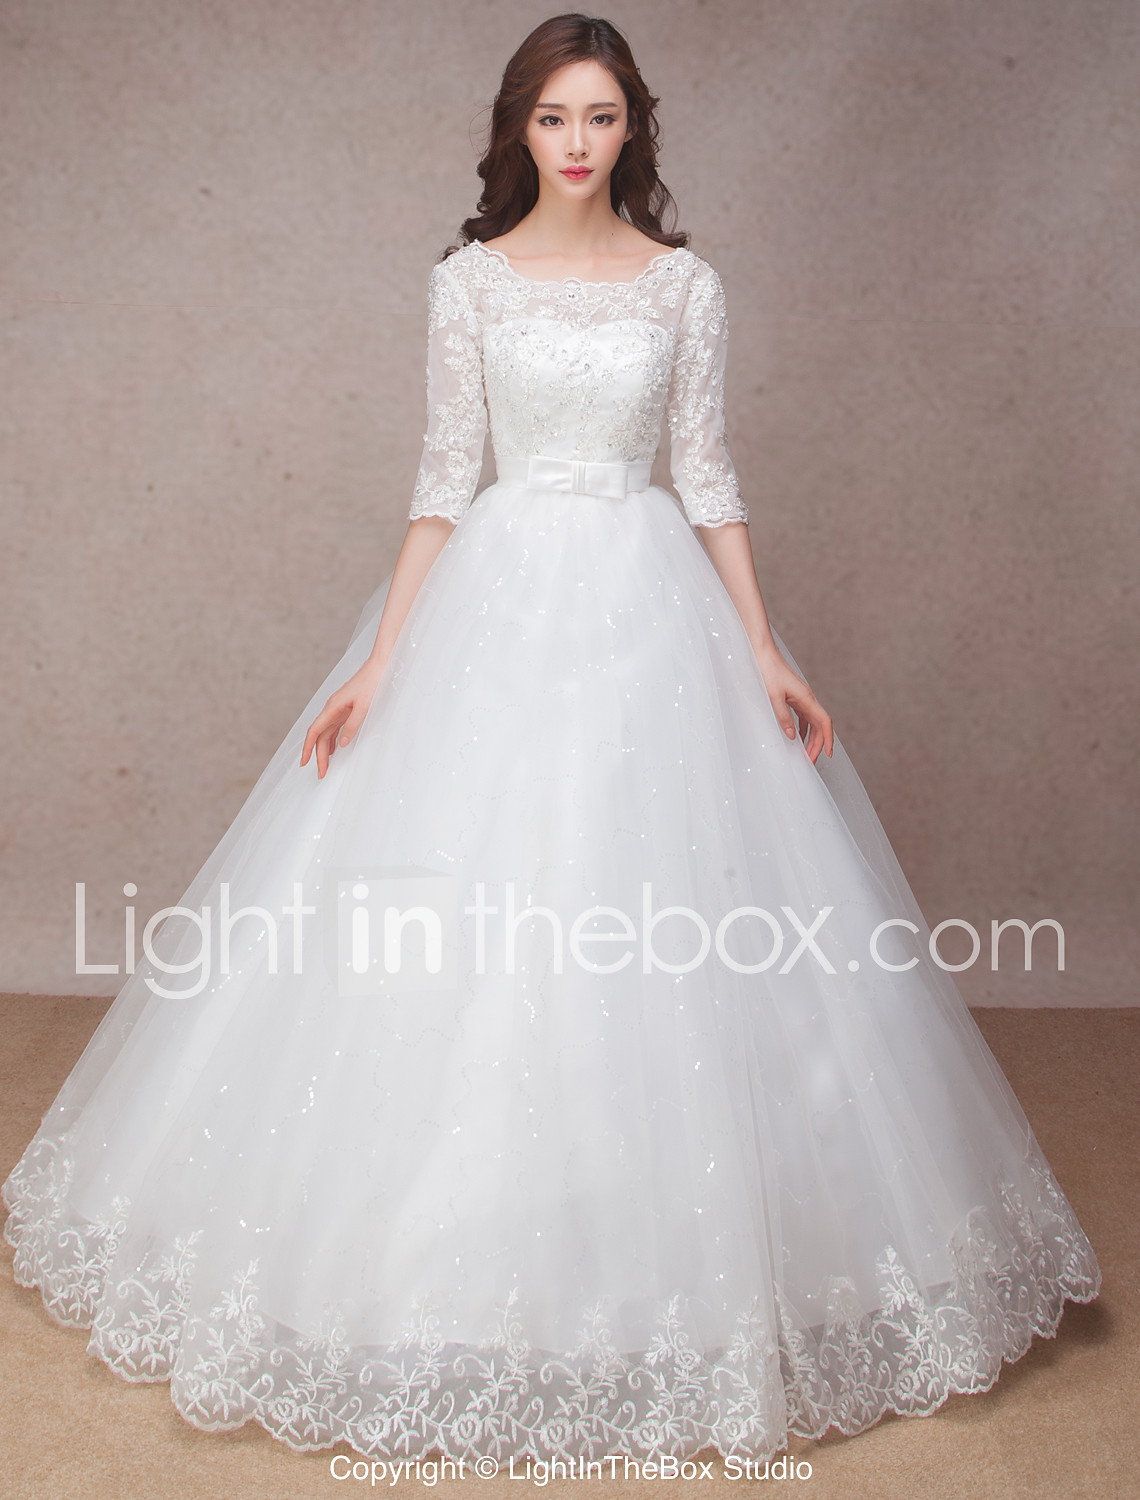 wedding dresses clearance wedding dresses Princess Wedding Dress Lacy Look Floor length Scoop Lace with Bow Flower Ruffle